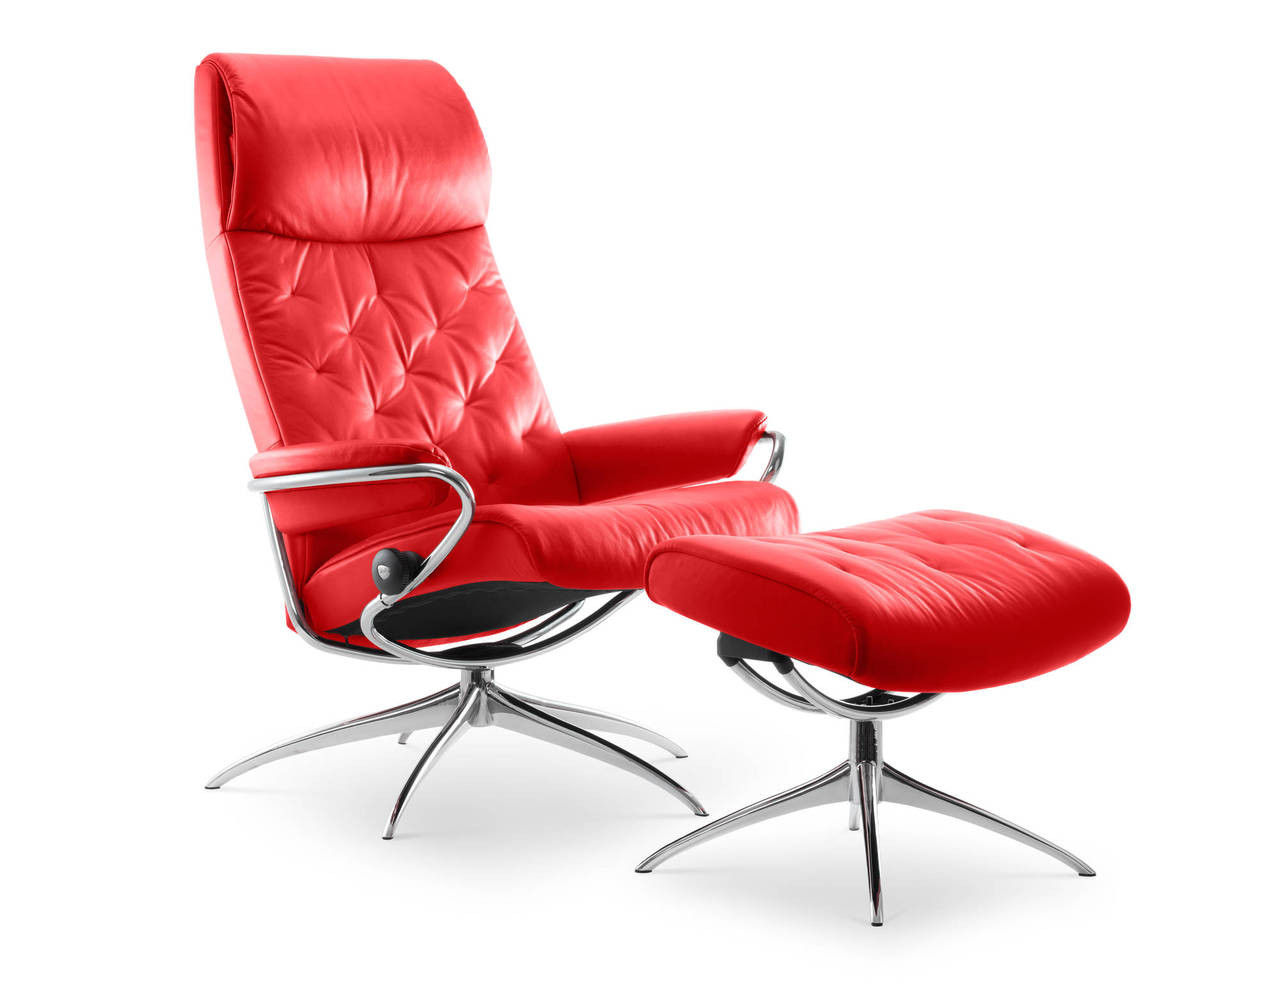 Stressless Fauteuils 2017 Ekornes Stressless Metro High Back Leather Recliner And